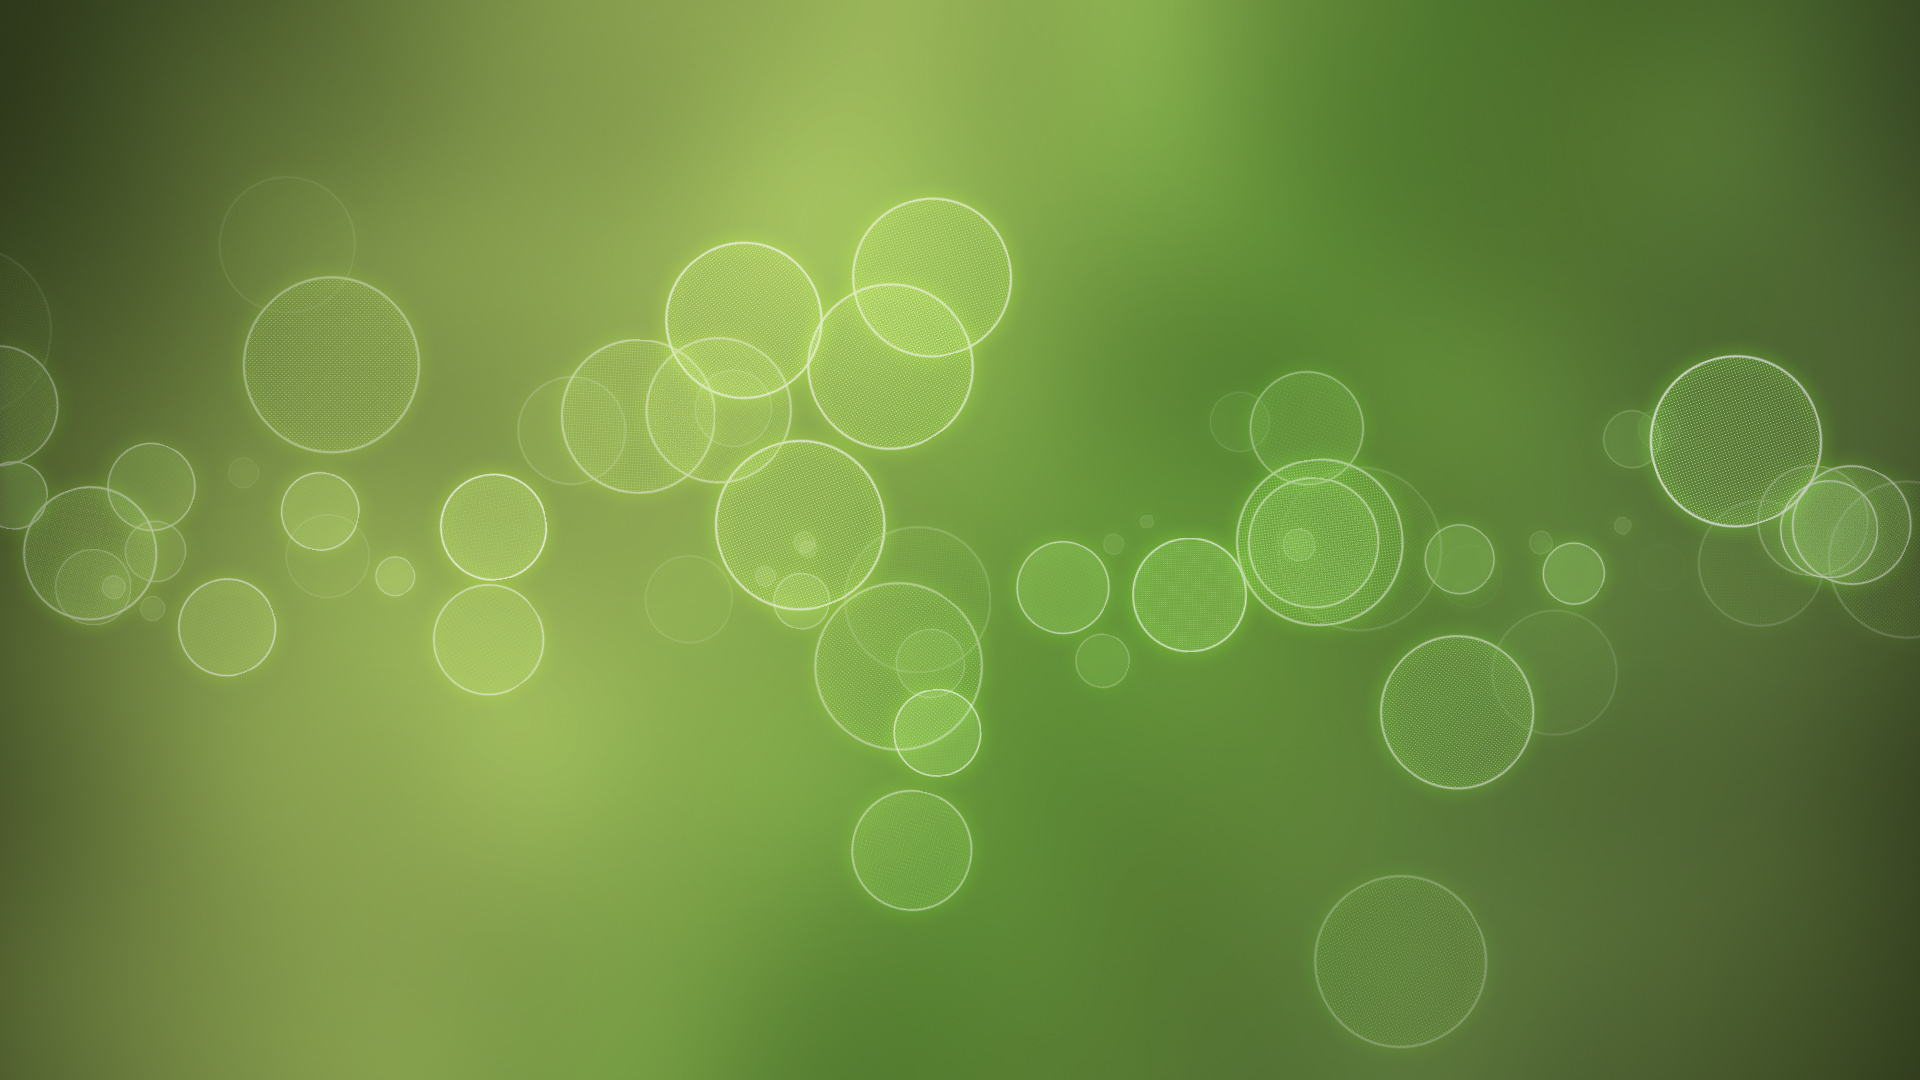 Bright-Bubbles-on-Light-Green-Background-Style-is-Thus-Clean-and-Simple-Looking-Good-on-Any-Computer-HD-Creative-Wallpaper